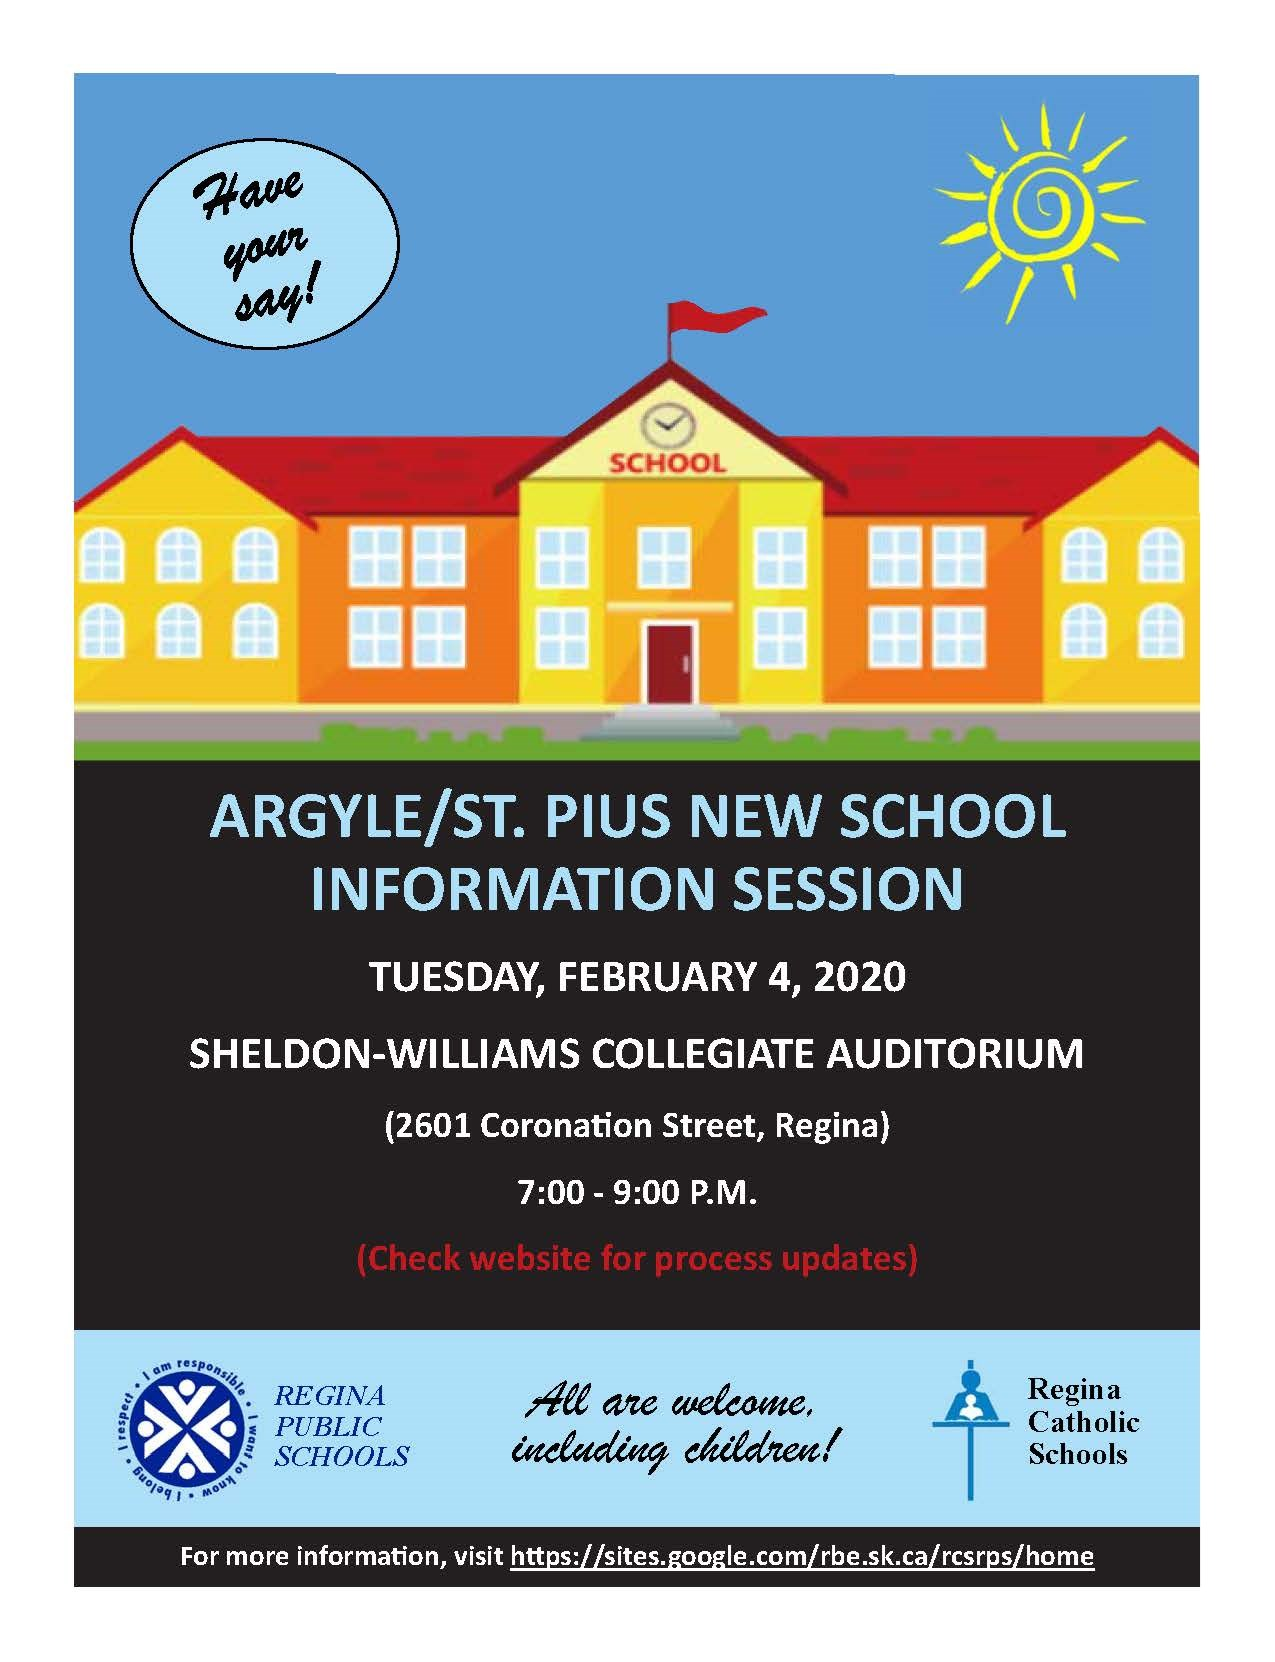 Argyle St Pius New School Information Meeting 2020 Updated.jpg